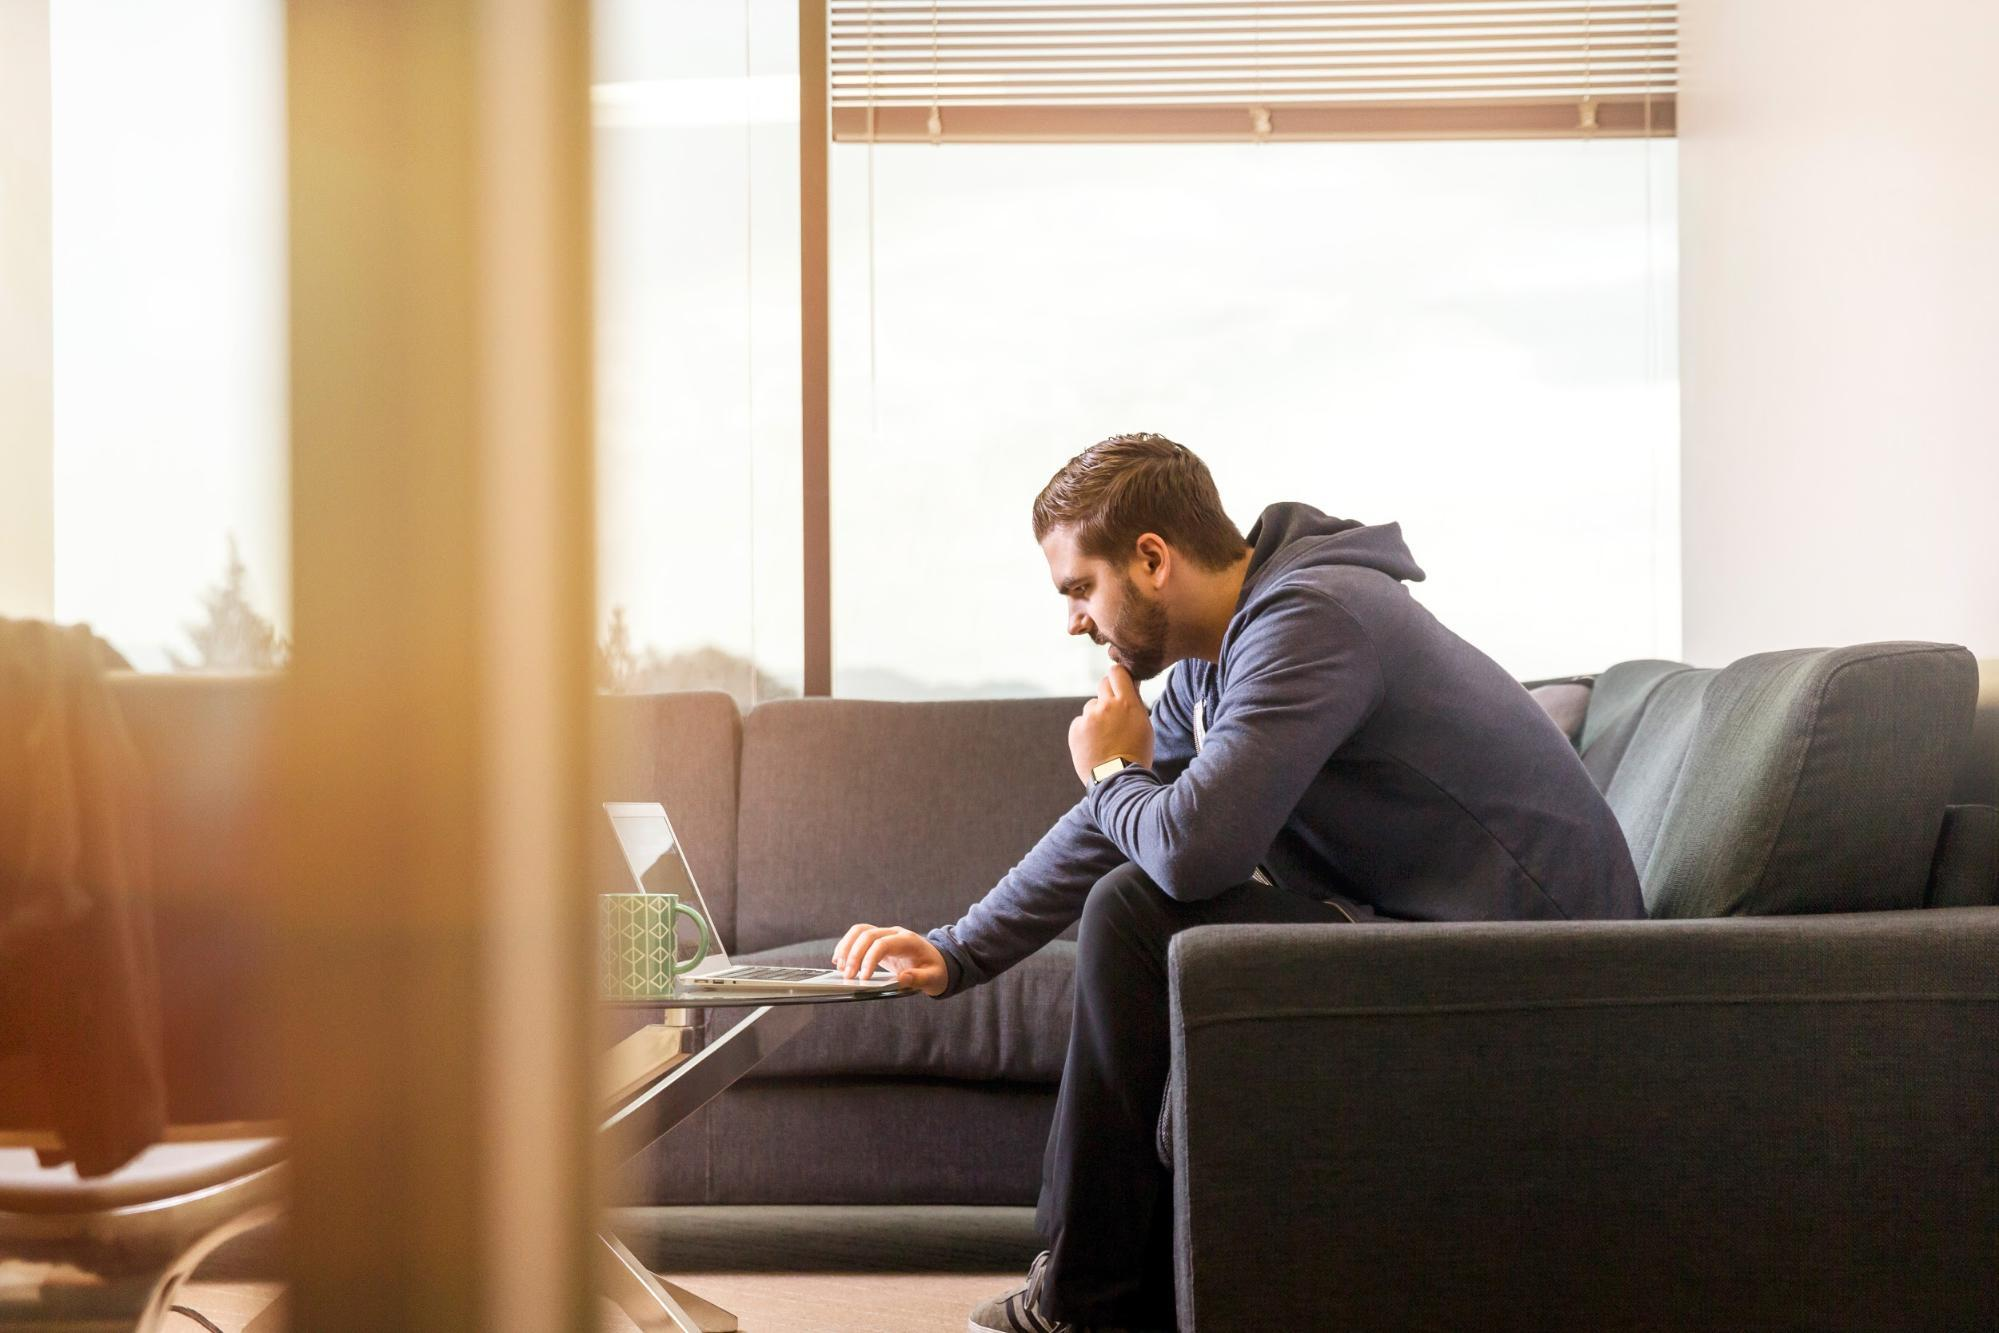 A coder, working from home representing an answer to the question - Are coding bootcamps worth it?